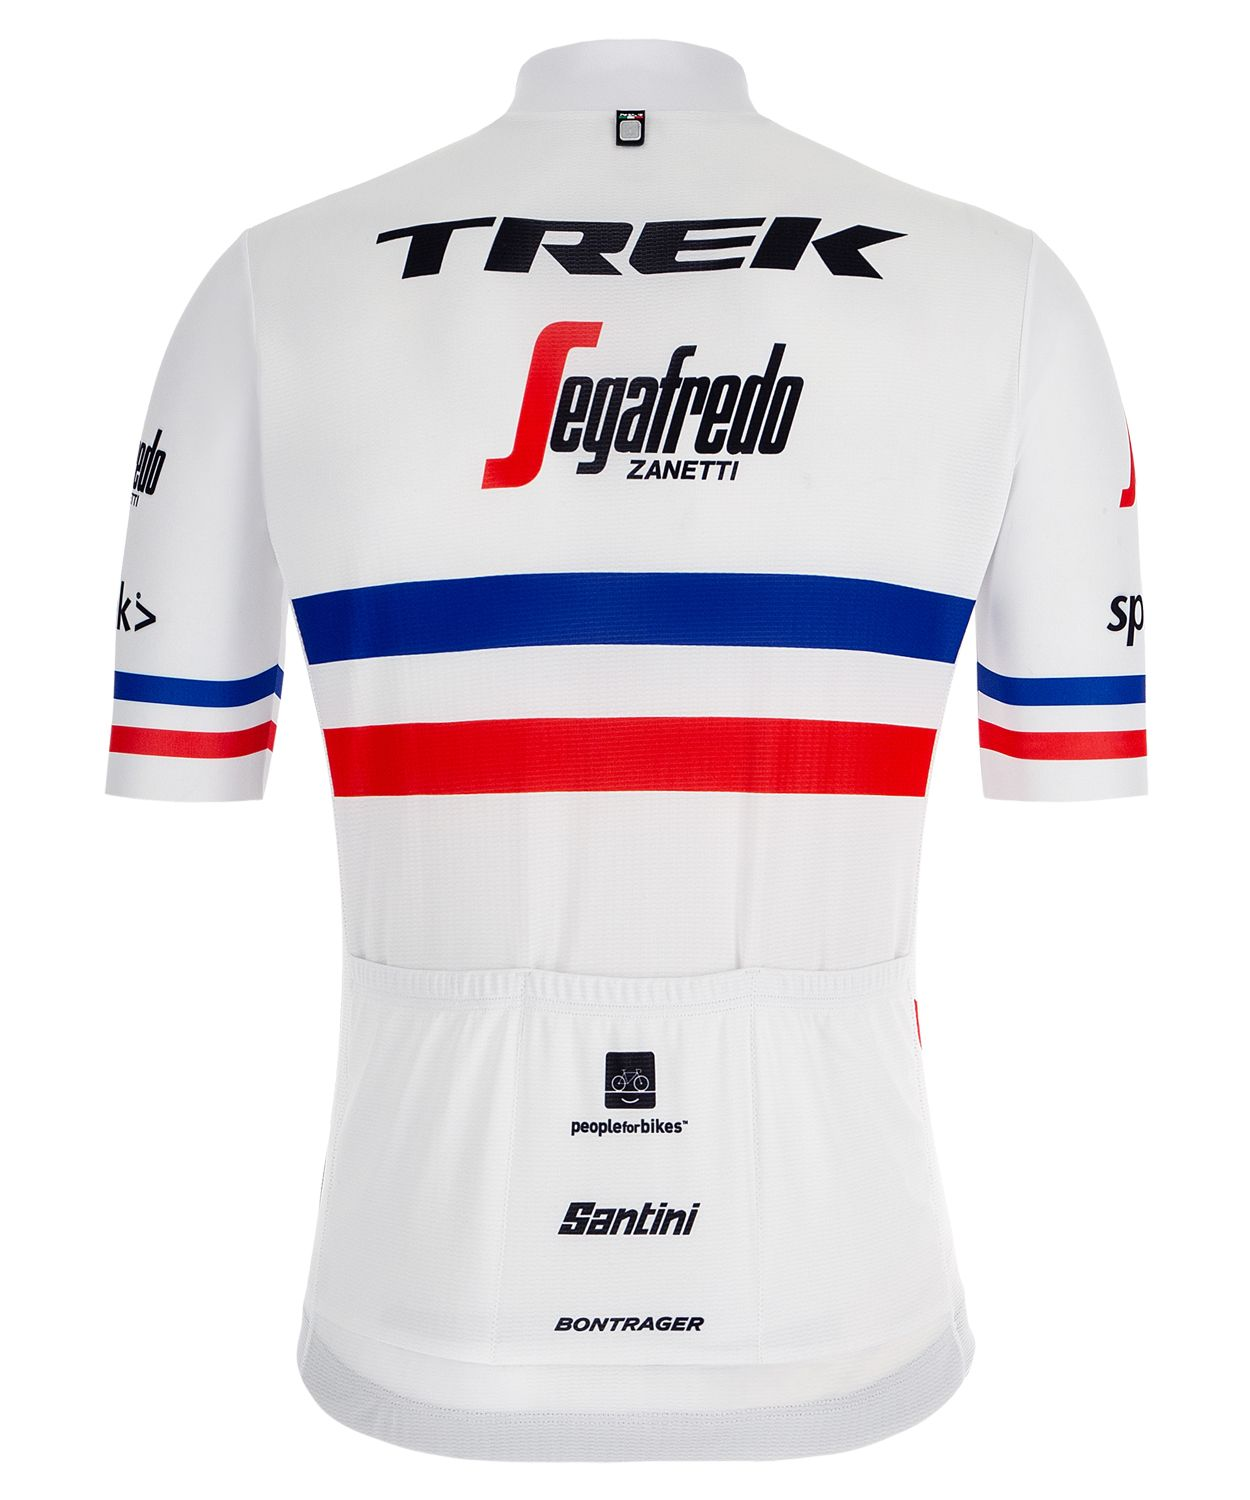 ... 2019 short sleeve cycling jersey (long zip) - Santini. Next ce05d681f